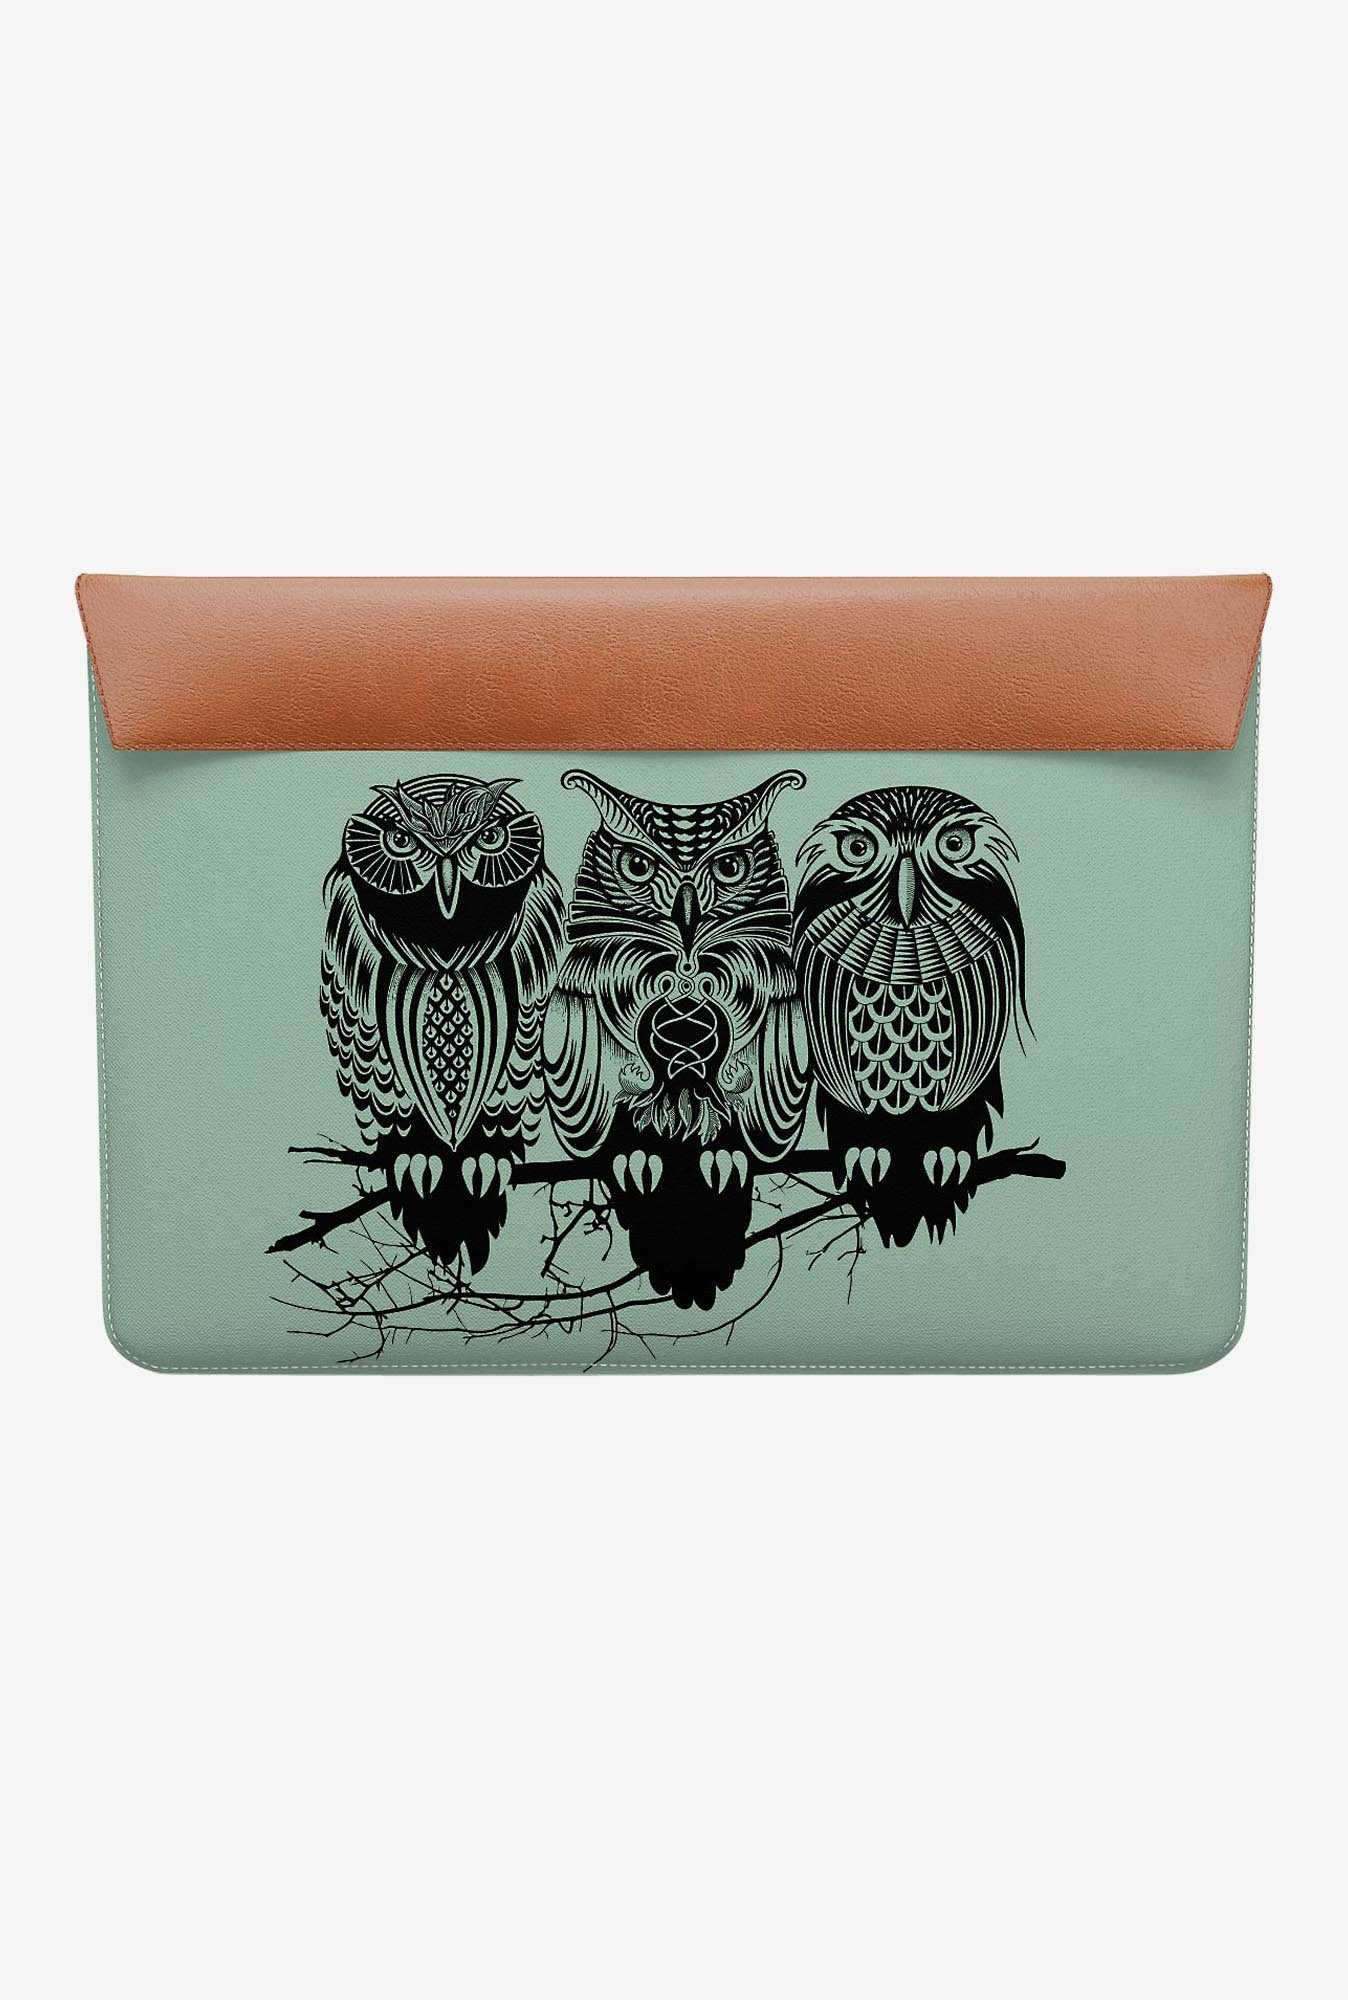 DailyObjects Owls of the Nile MacBook Pro 15 Envelope Sleeve